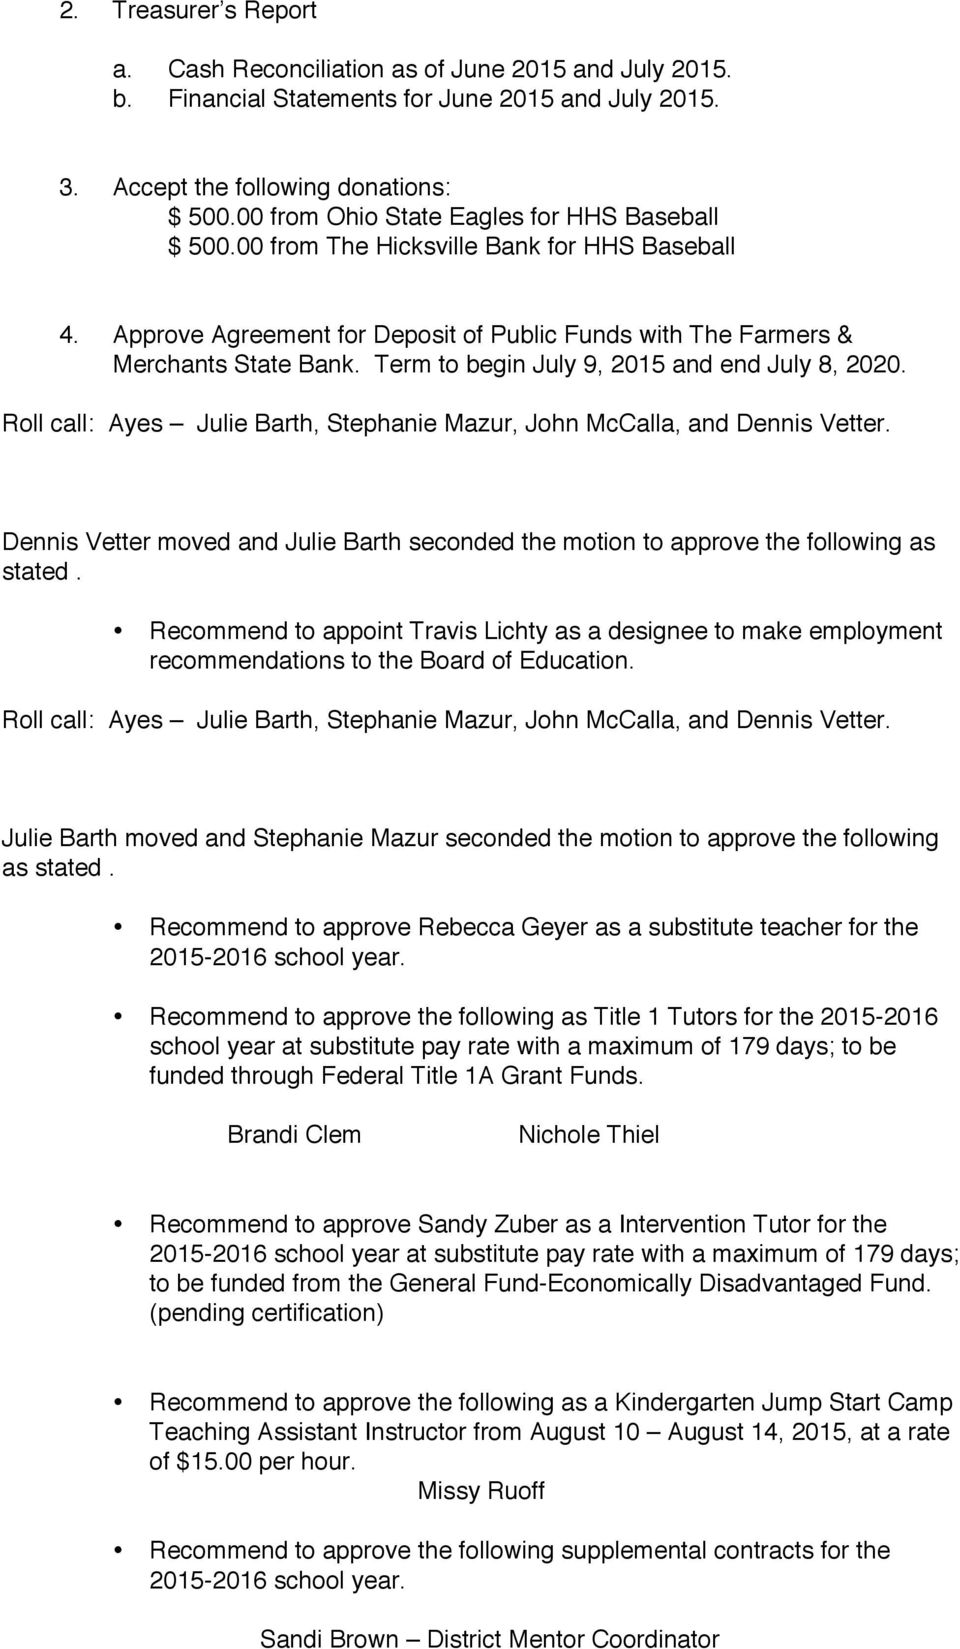 Term to begin July 9, 2015 and end July 8, 2020. Recommend to appoint Travis Lichty as a designee to make employment recommendations to the Board of Education.